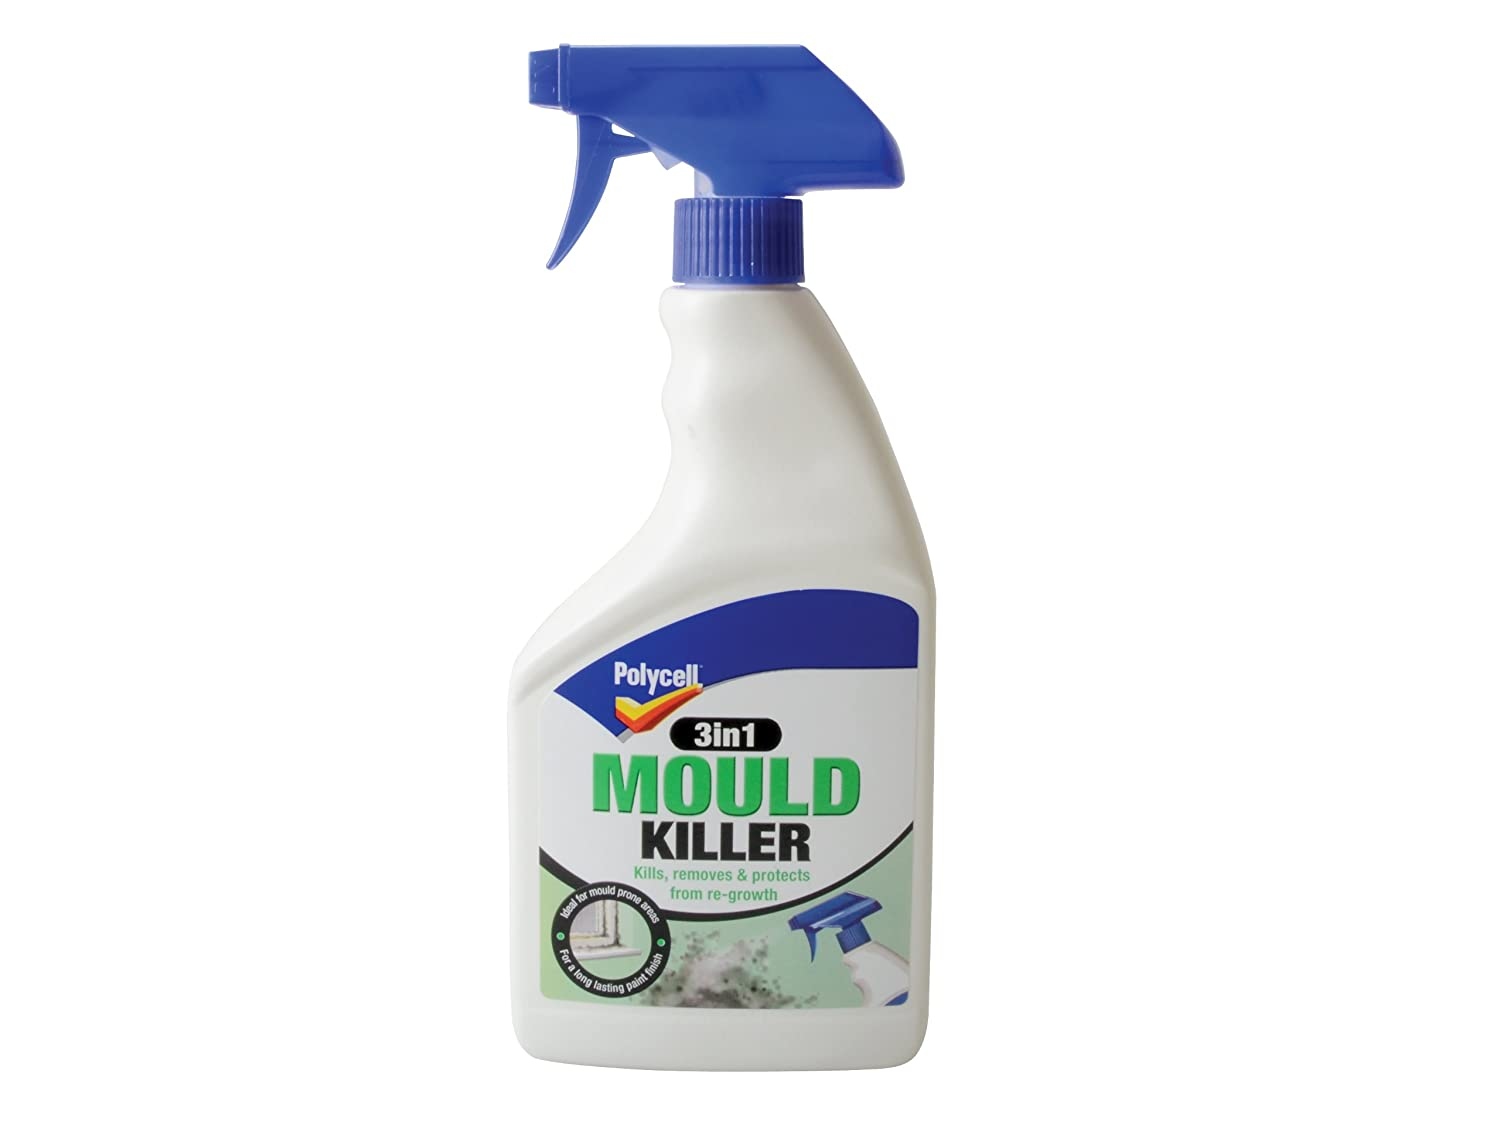 2X Polycell 3-in-1 Mould Killer Spray, 500 ml